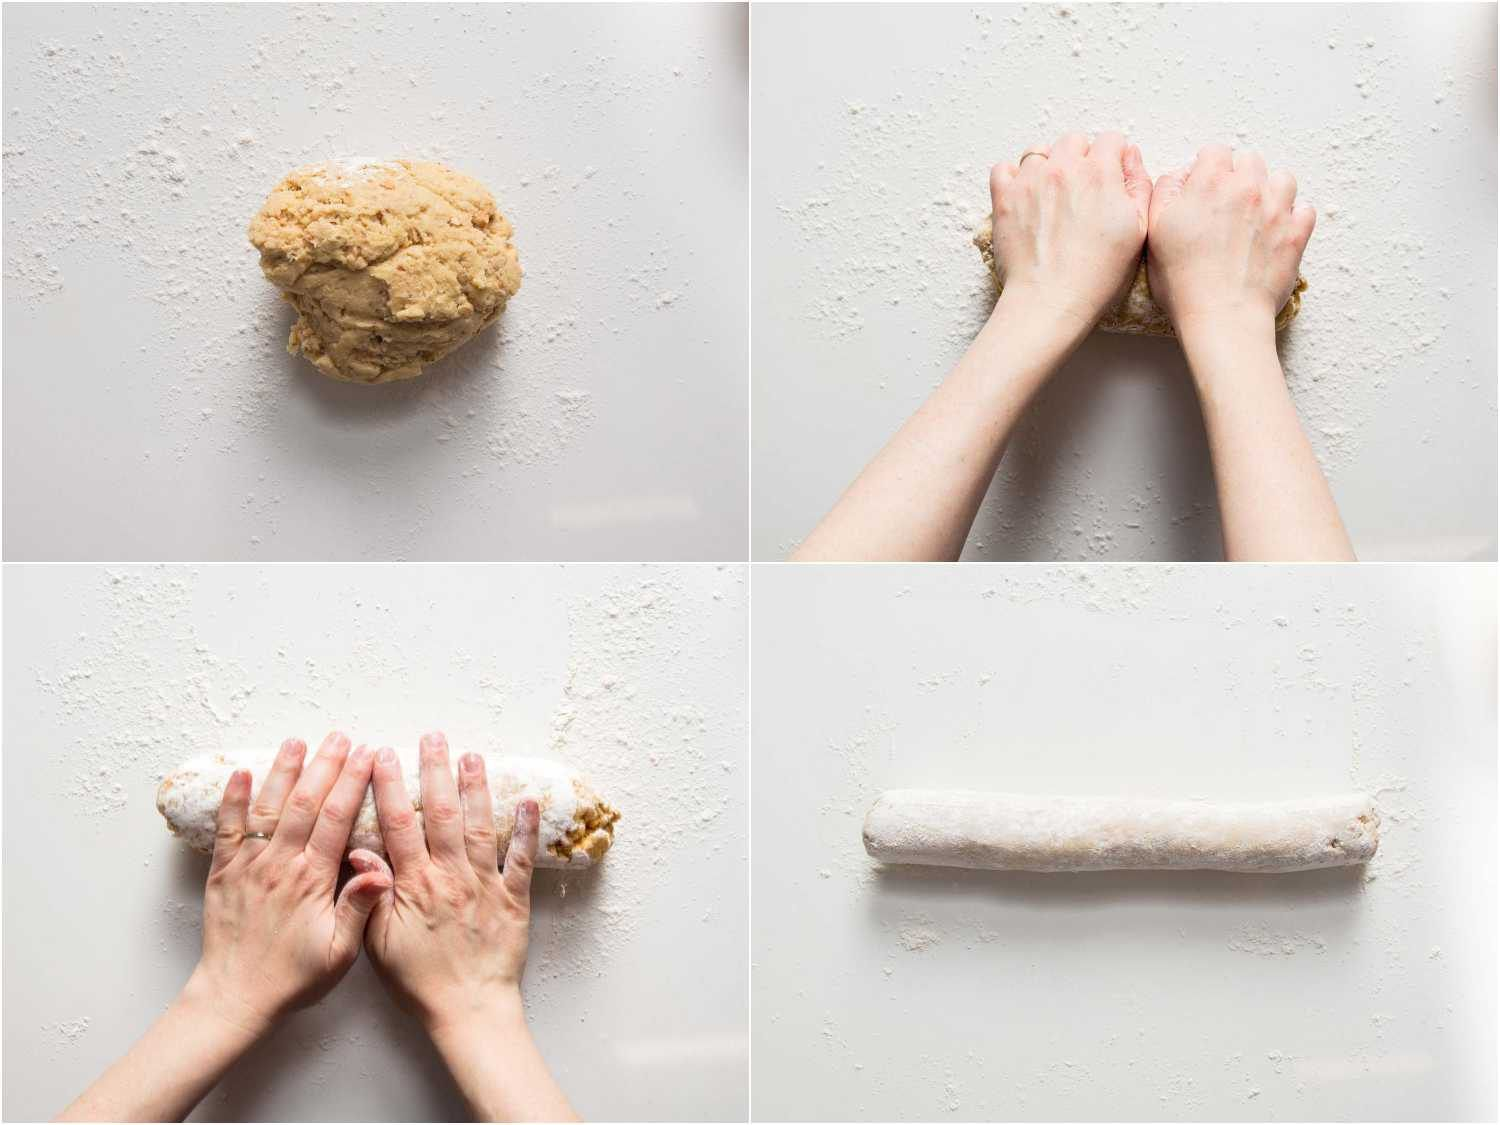 forming the log of dough